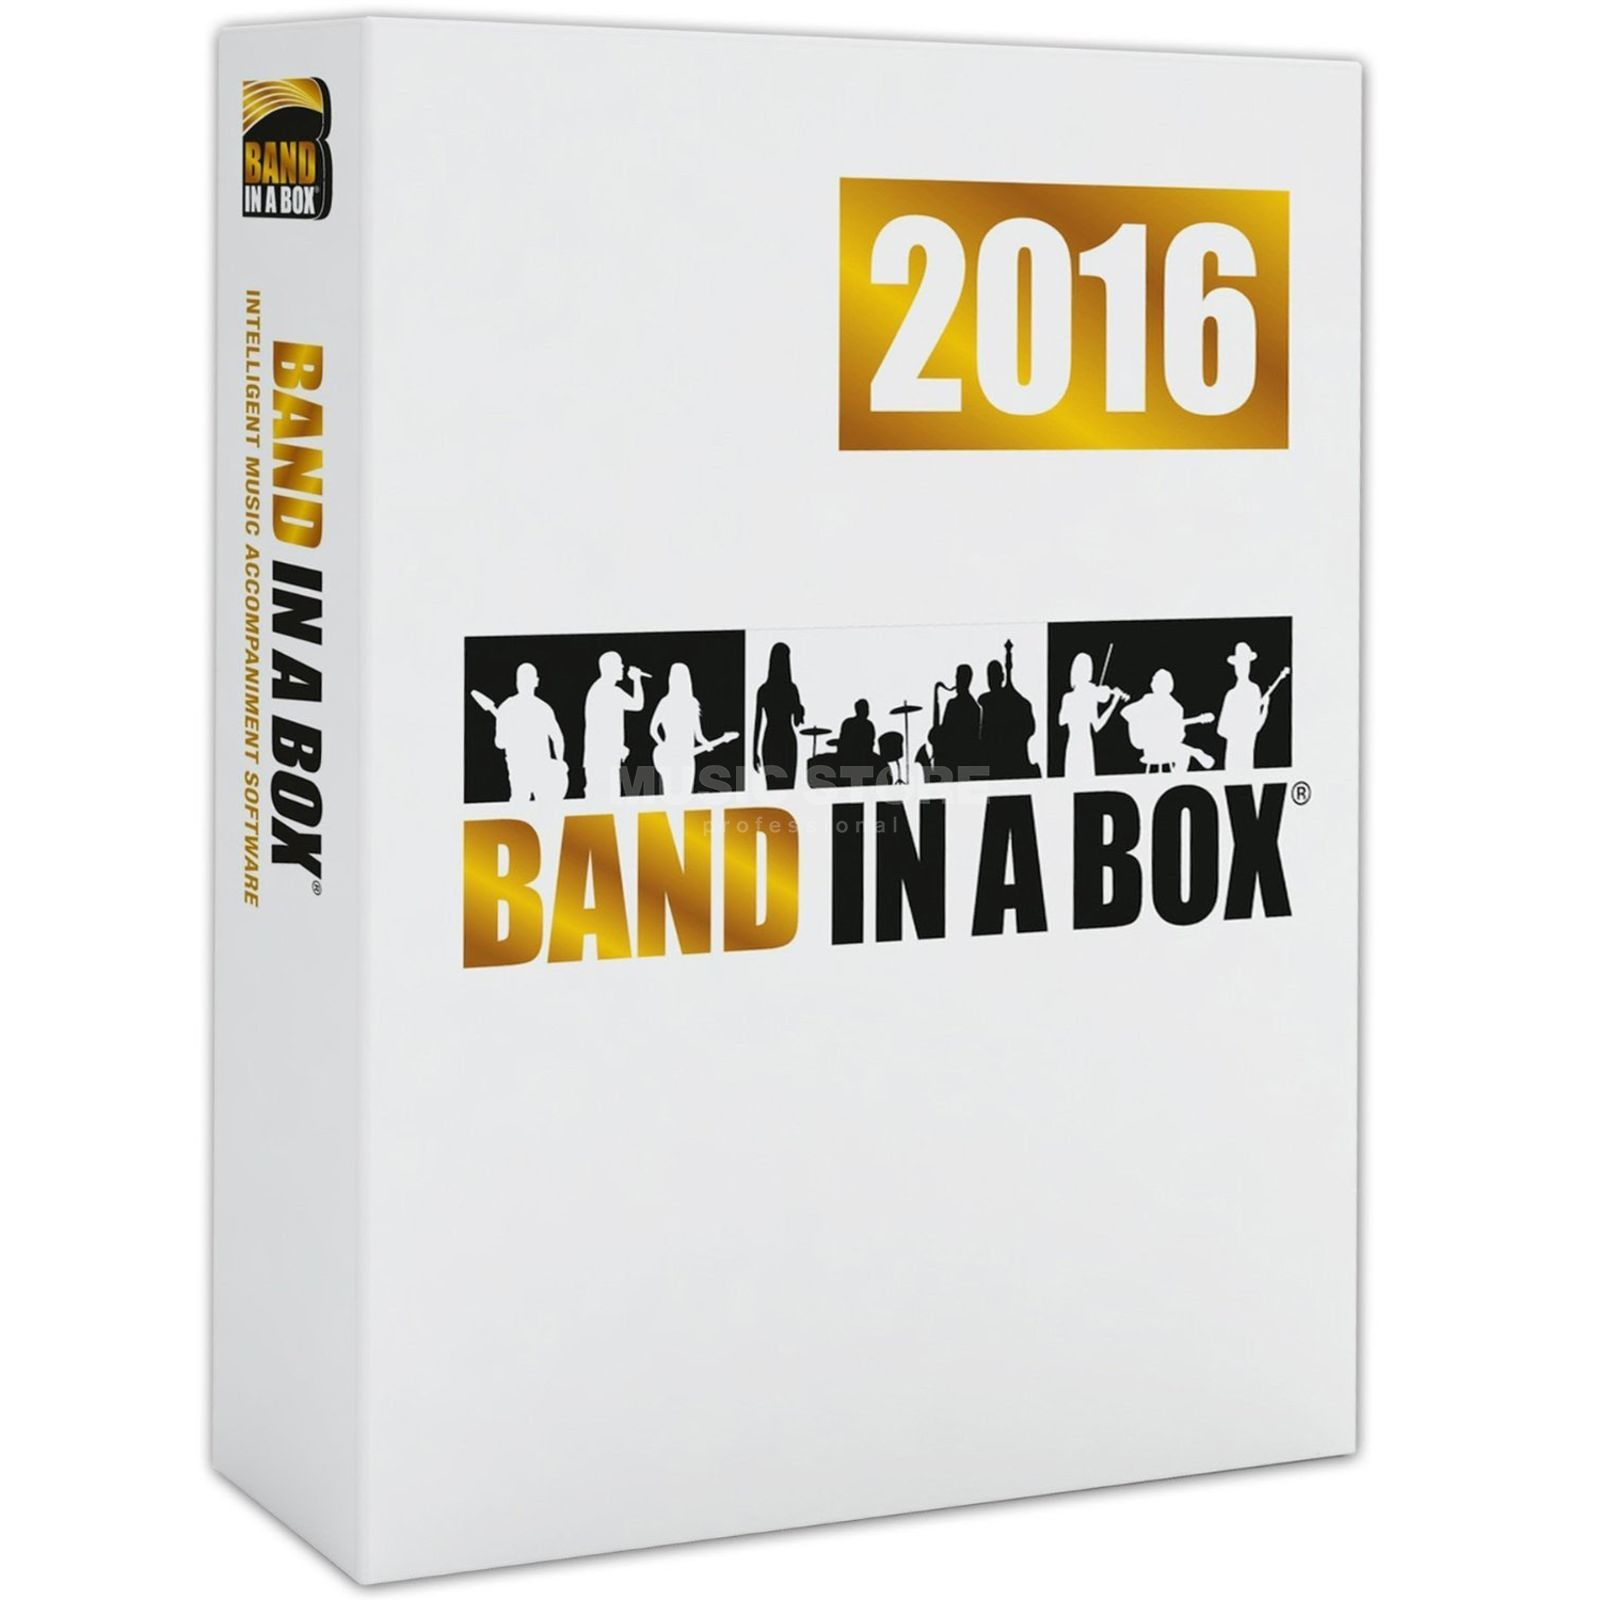 PG Music Band in a Box 2016 MEGAPAK PC DE Produktbillede